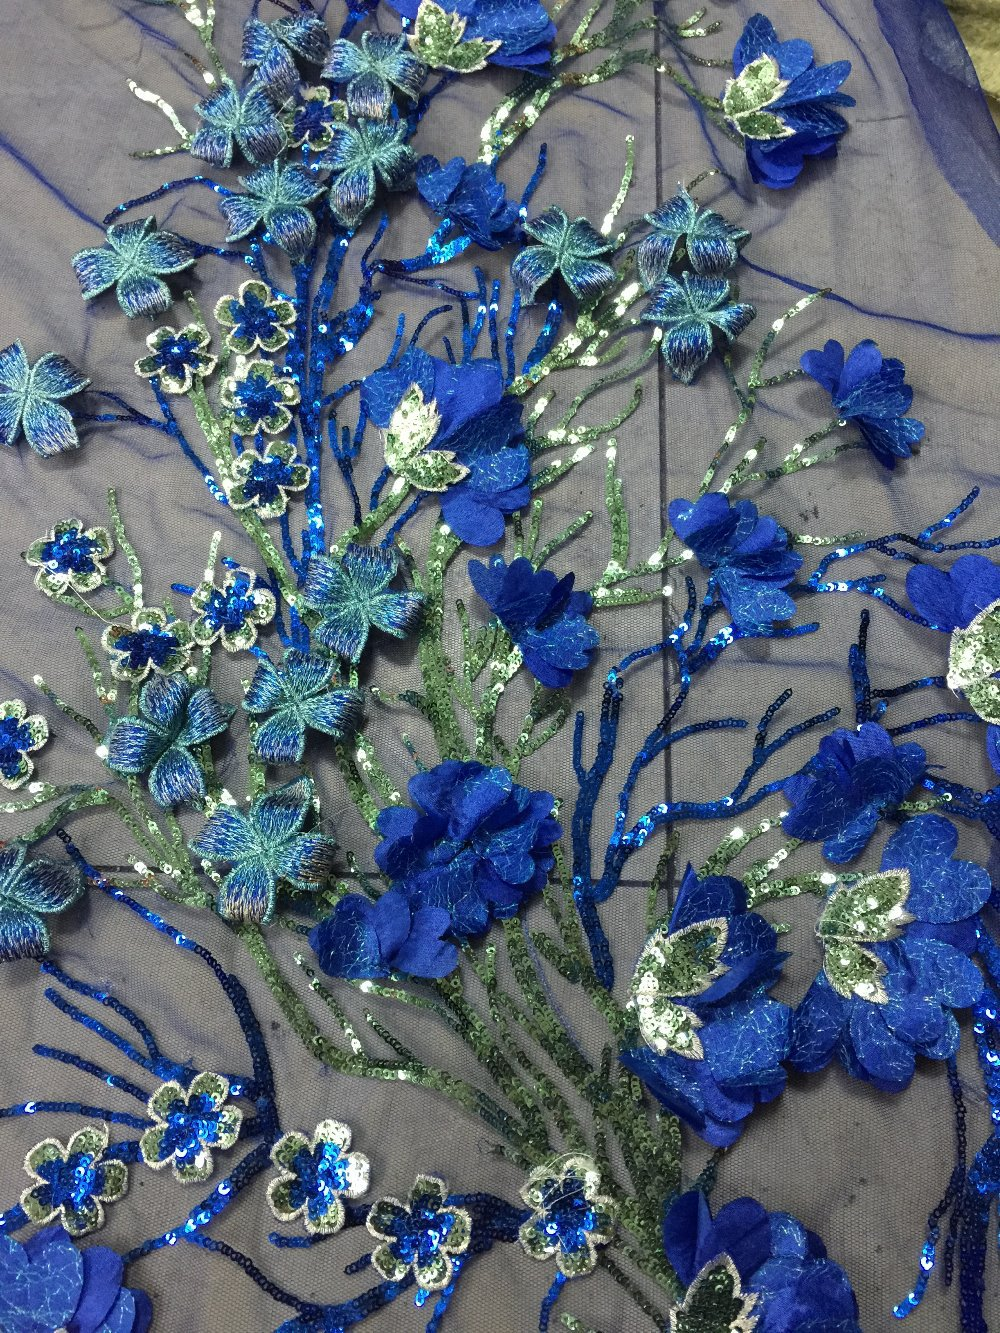 Sequins Embroidery Lace Fabric For Wedding Dressmesh Lace Royal